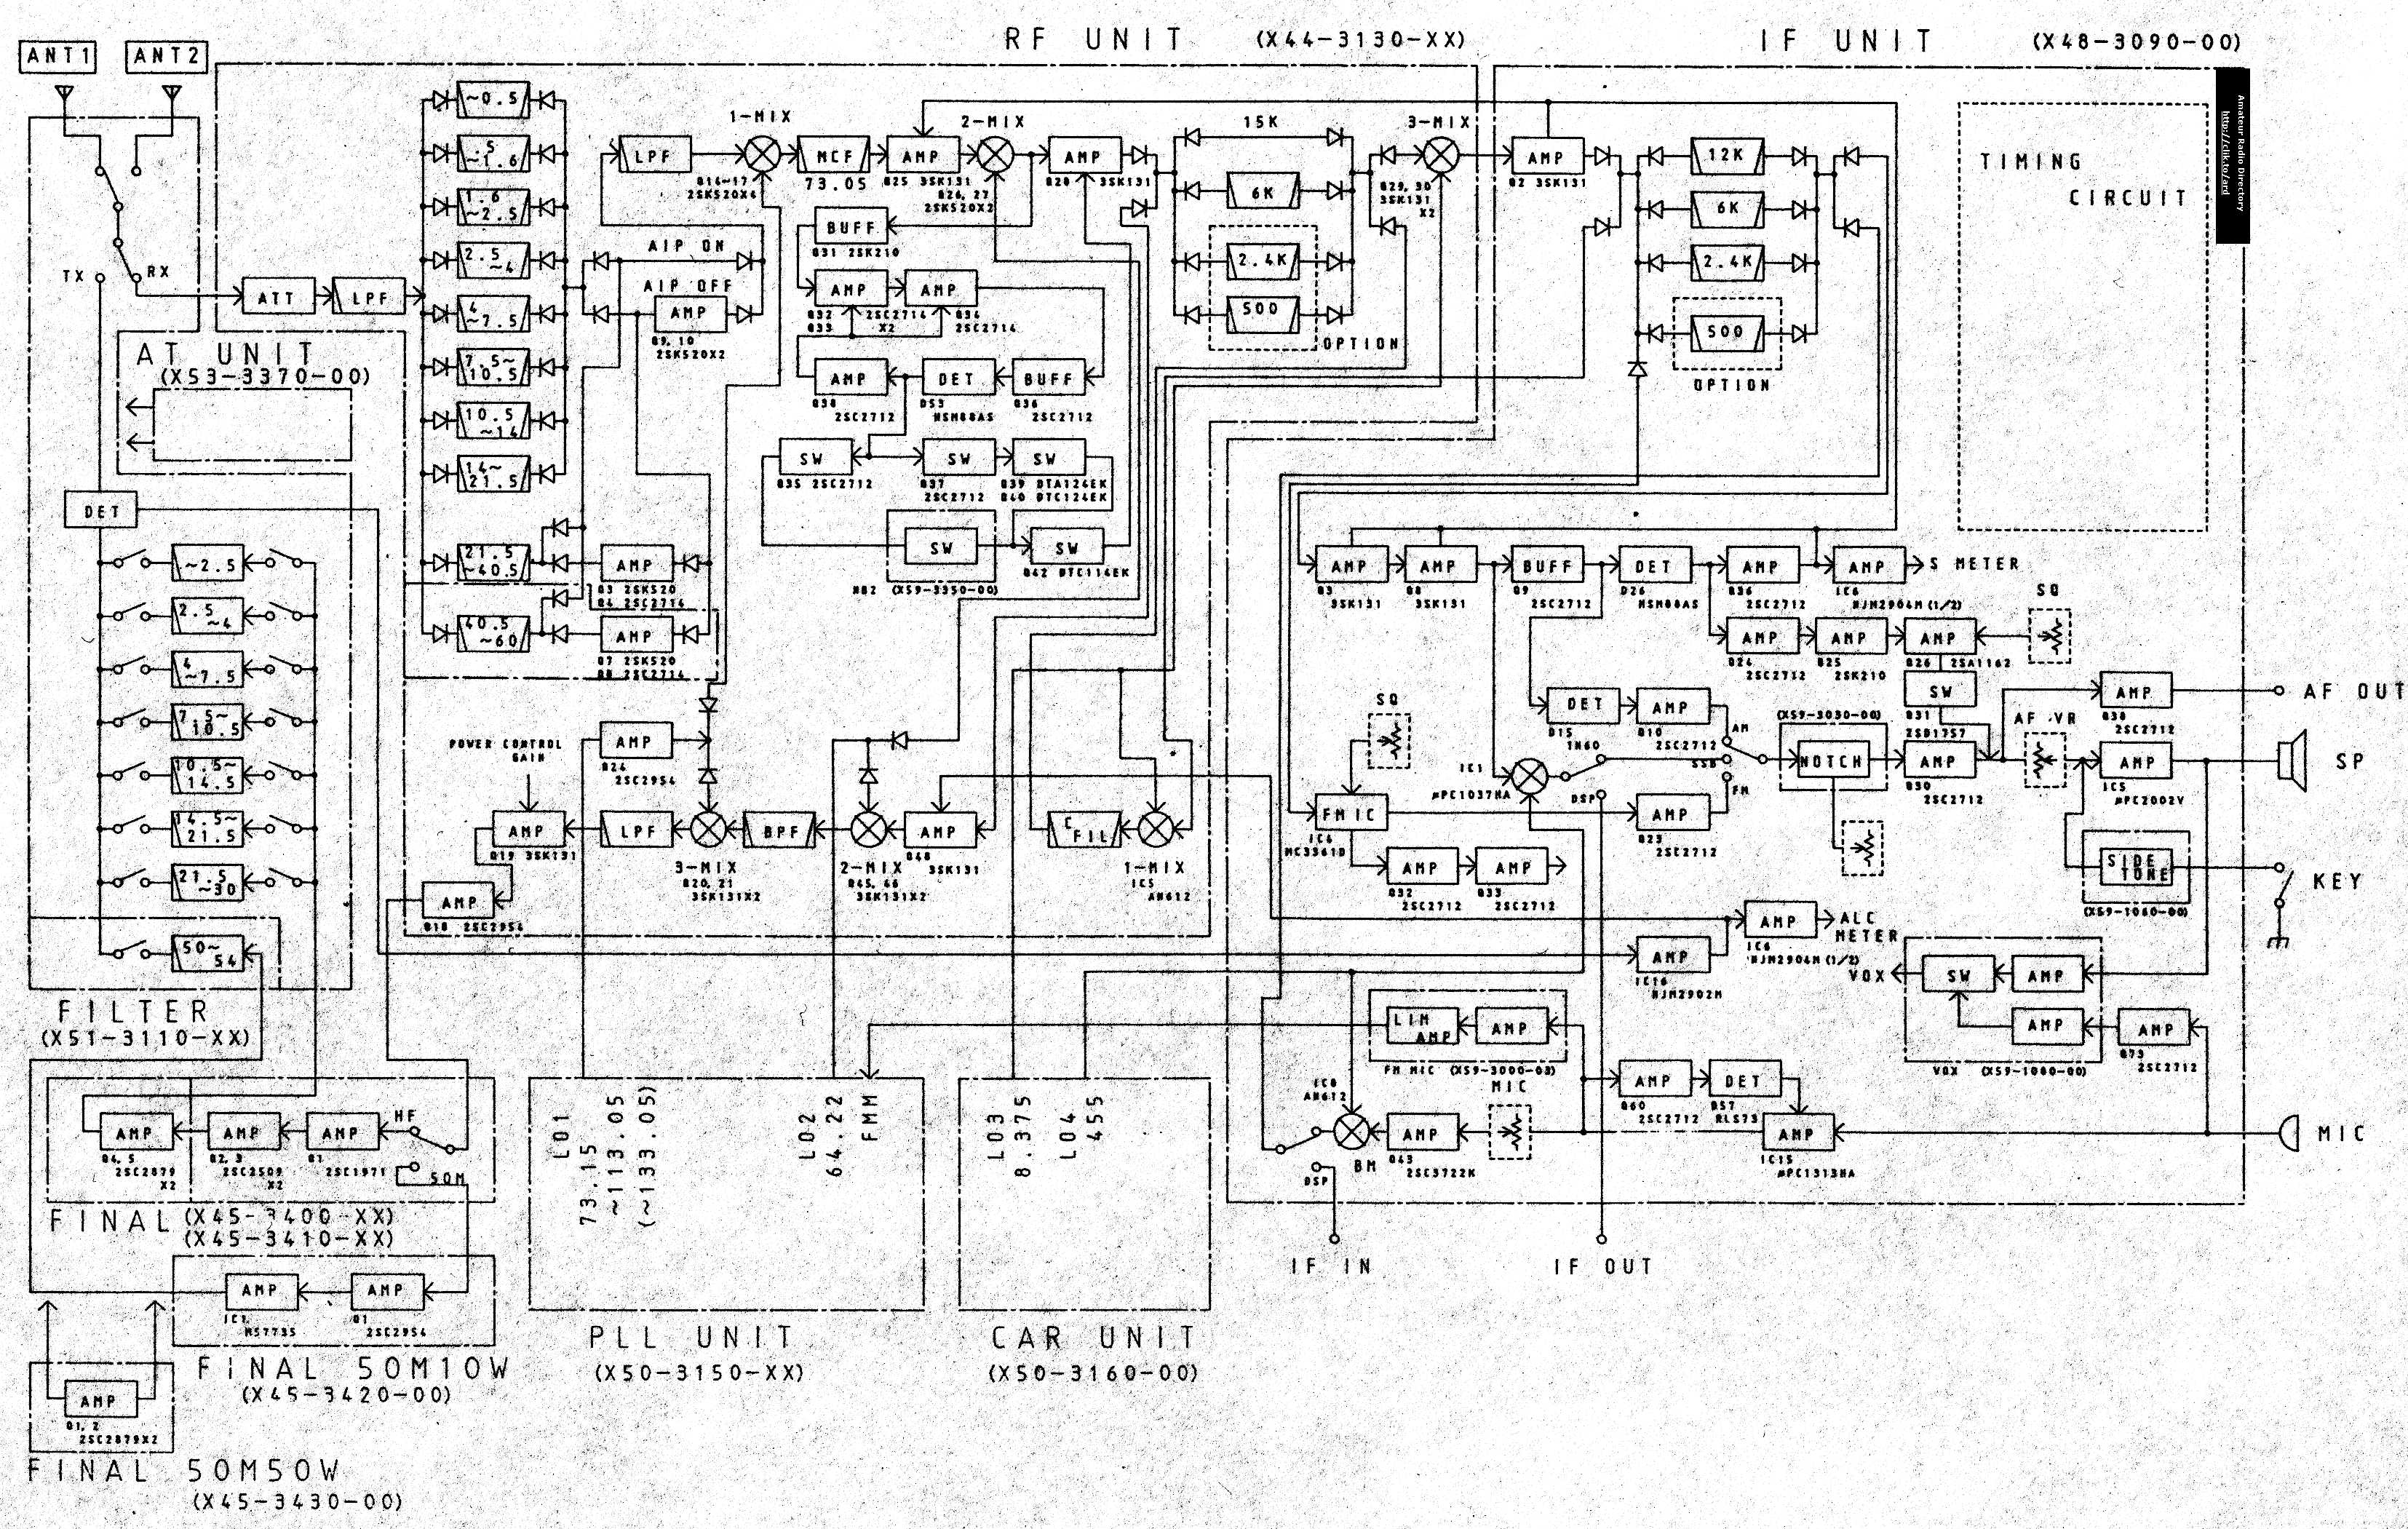 fiat wiring diagram with Schema Elettrico Smart 450 on Cherokee Xj likewise 11 Notice De Montage Du Relais Matic V7 additionally Fiat Spider 2000 Turbo Engine as well Fiat Stilo 2001 2008 Fuse Box Diagram also Ignition.